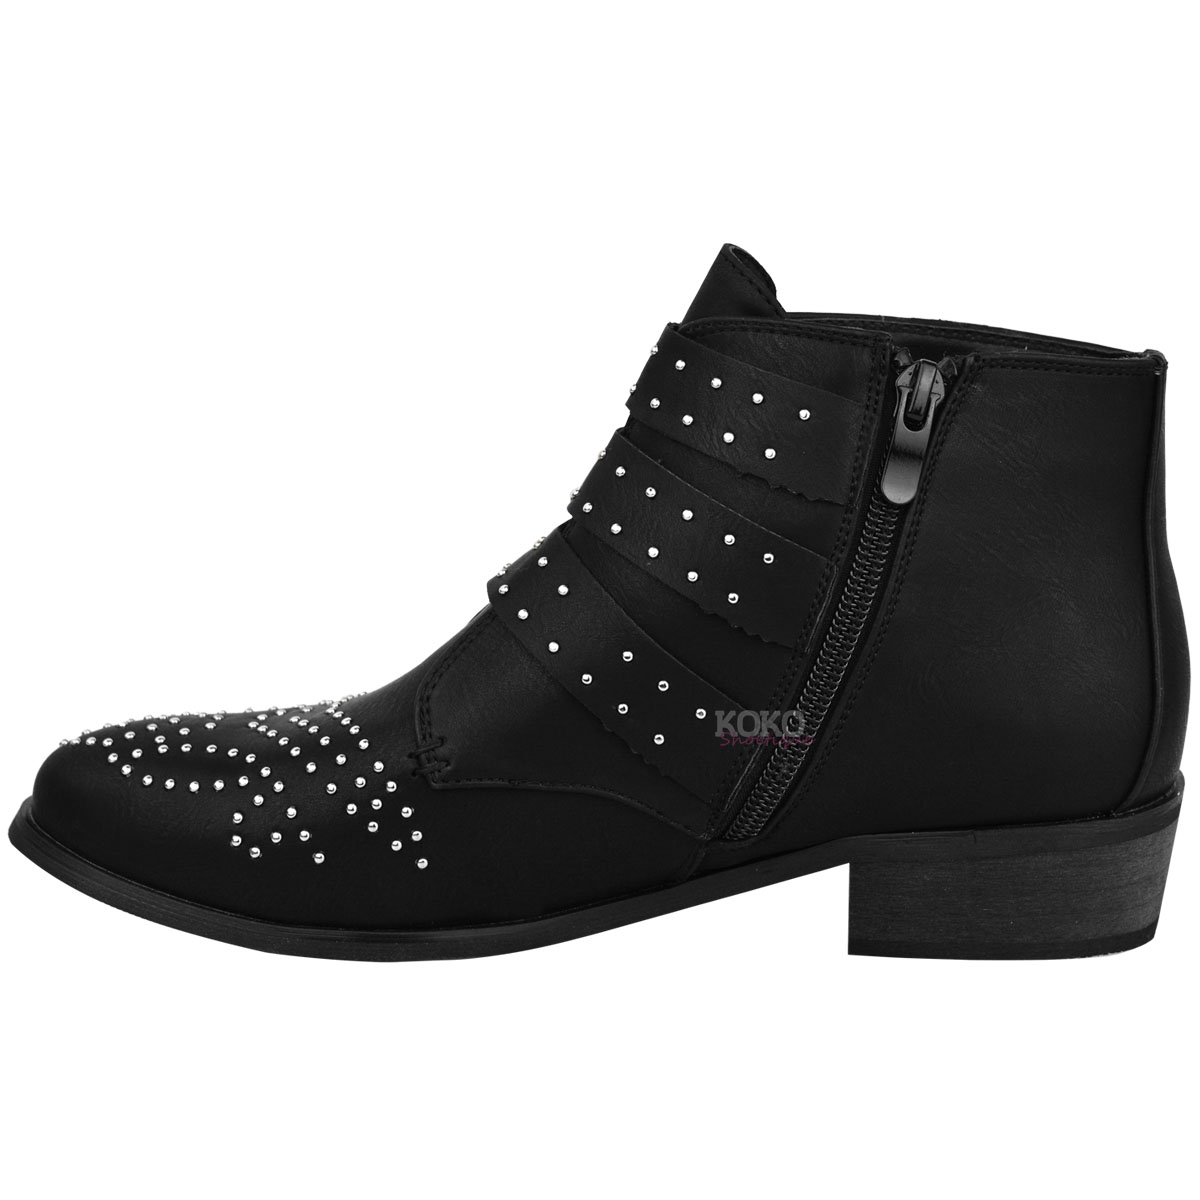 New Womens Ladies Vintage Studded Ankle Boots Biker Low Heel ...